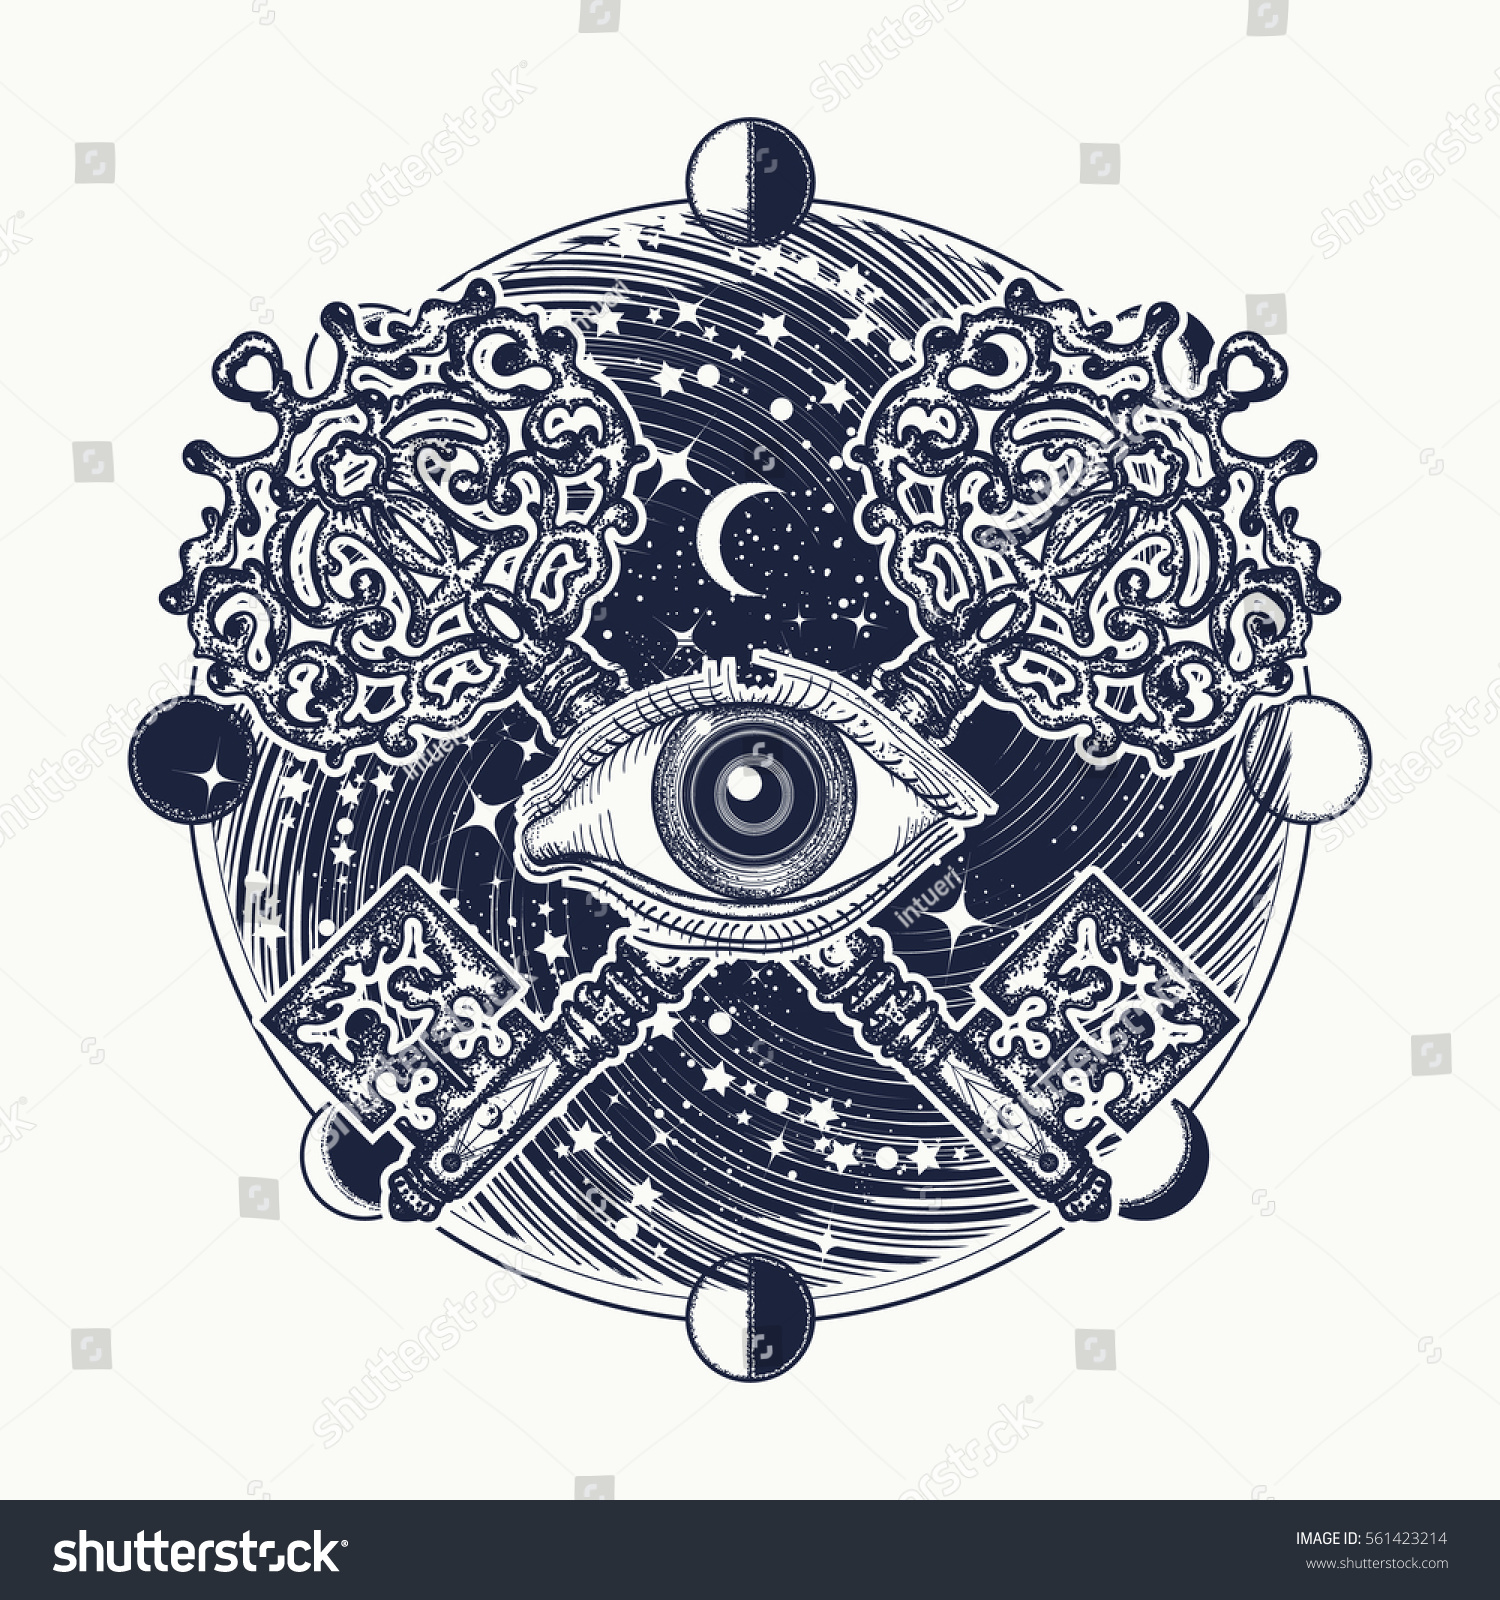 All Seeing Eye Tattoo Occult Art Stock Vector Royalty Free